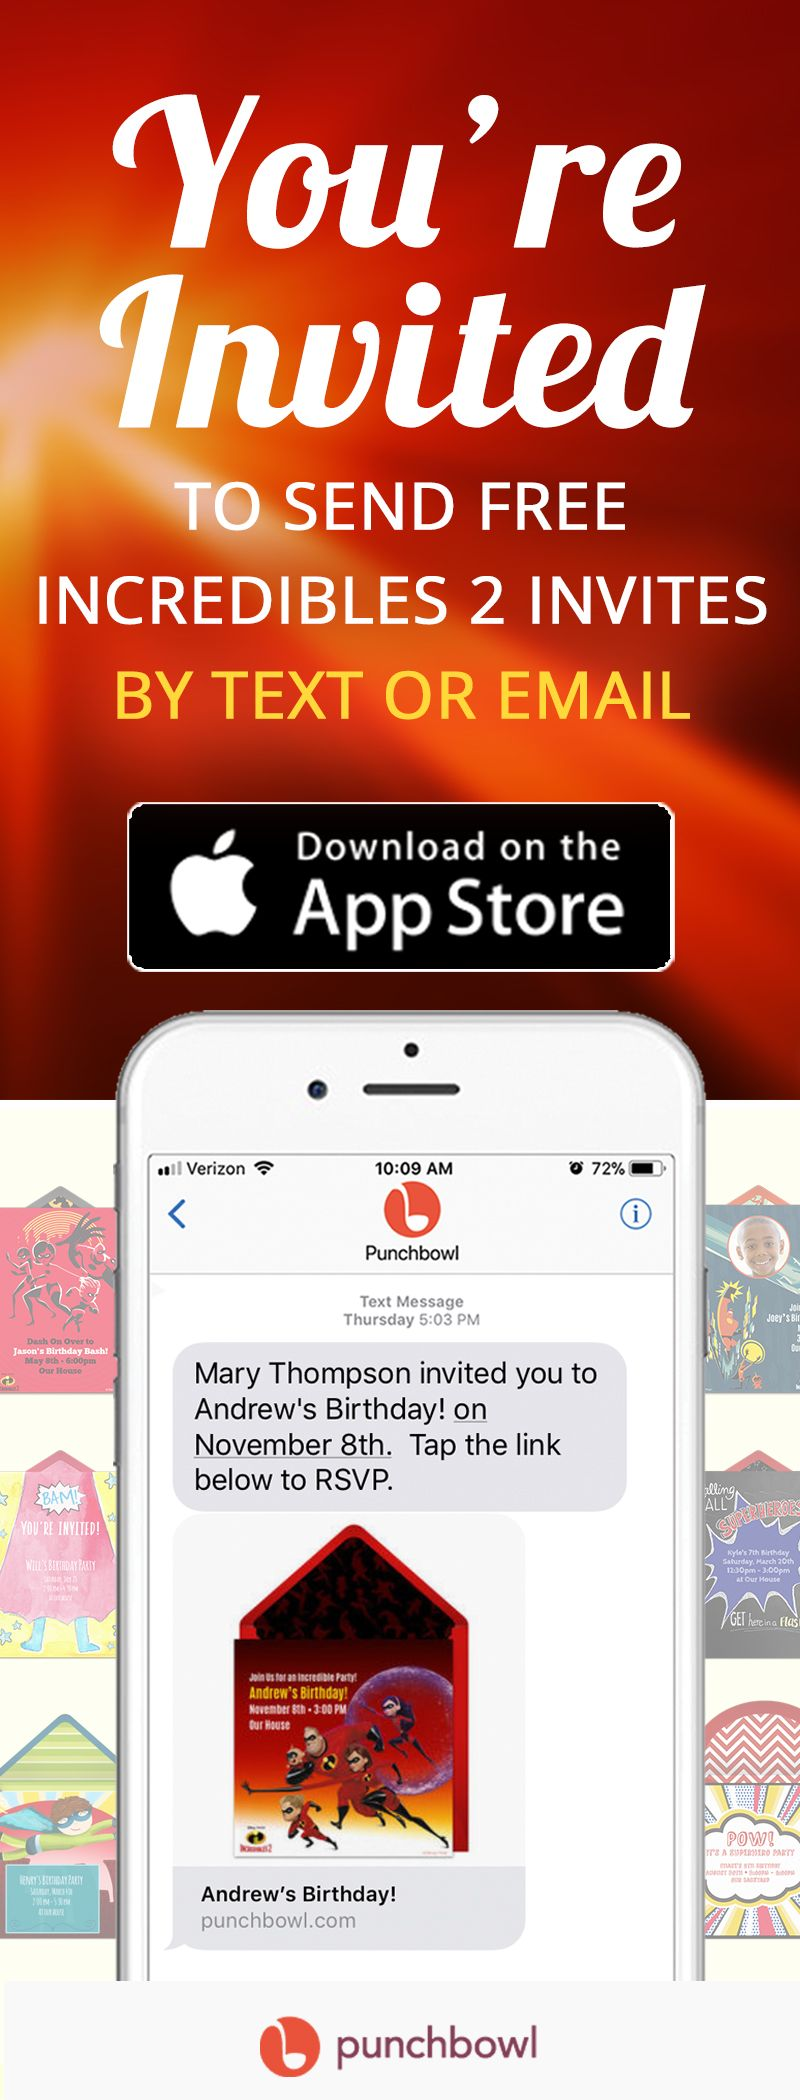 Send free Incredibles 2 invitations by text message right